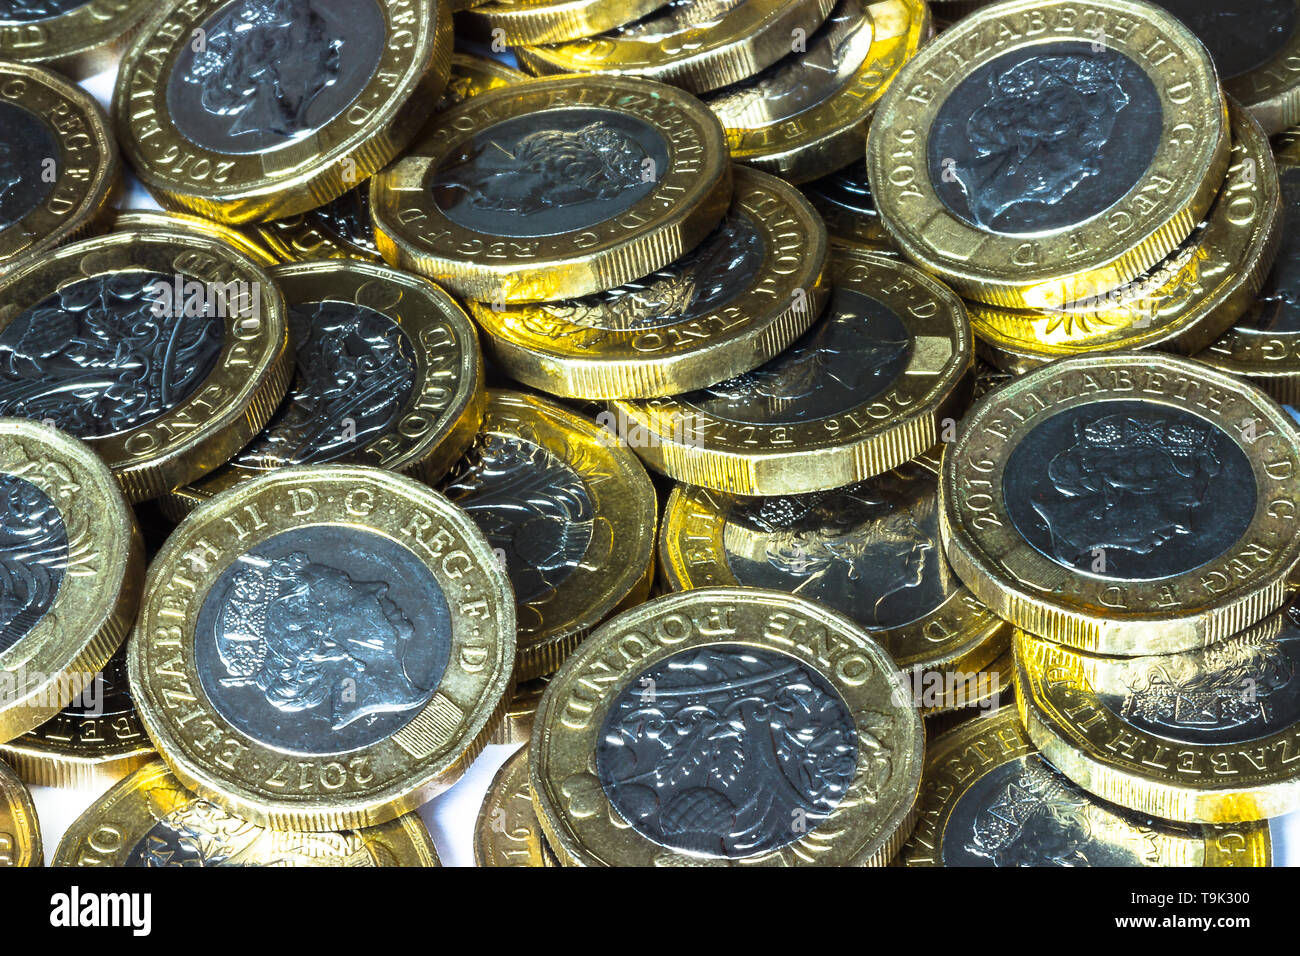 Pile of £1 coins - Stock Image